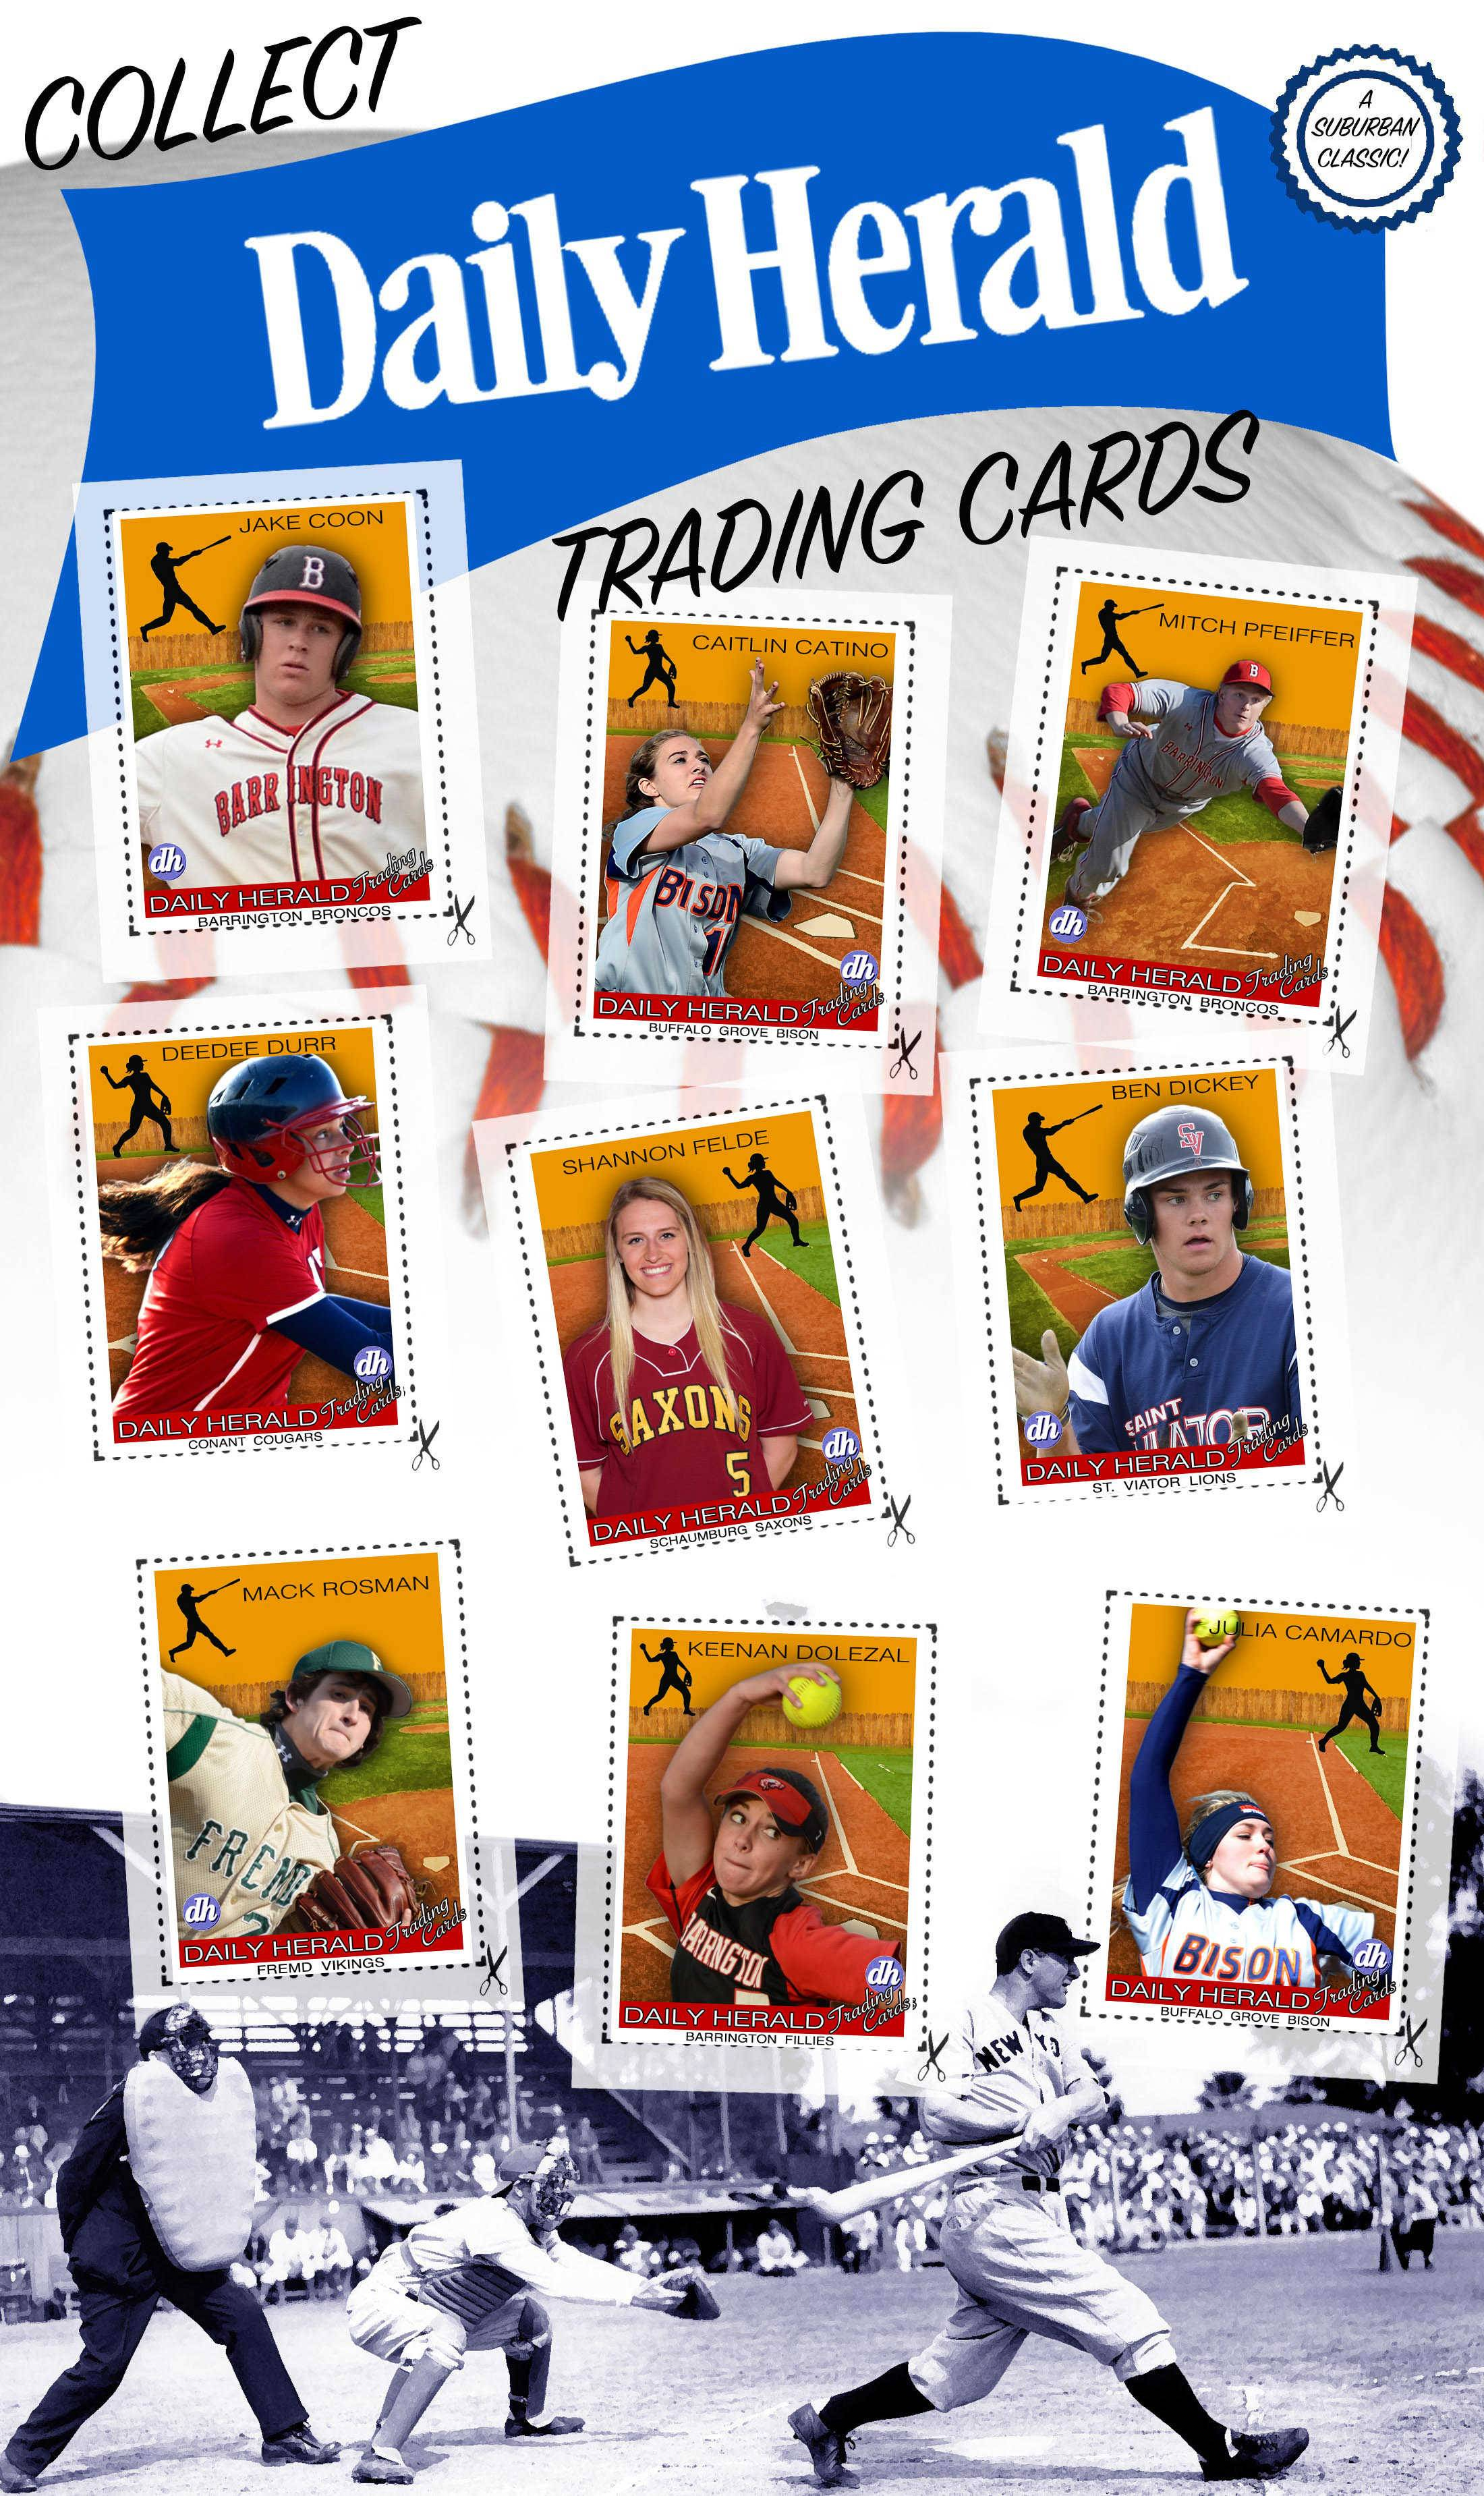 Daily Herald trading cards are back for 2015, highlighting returning baseball and softball players. Here, players in the northwest suburbs.